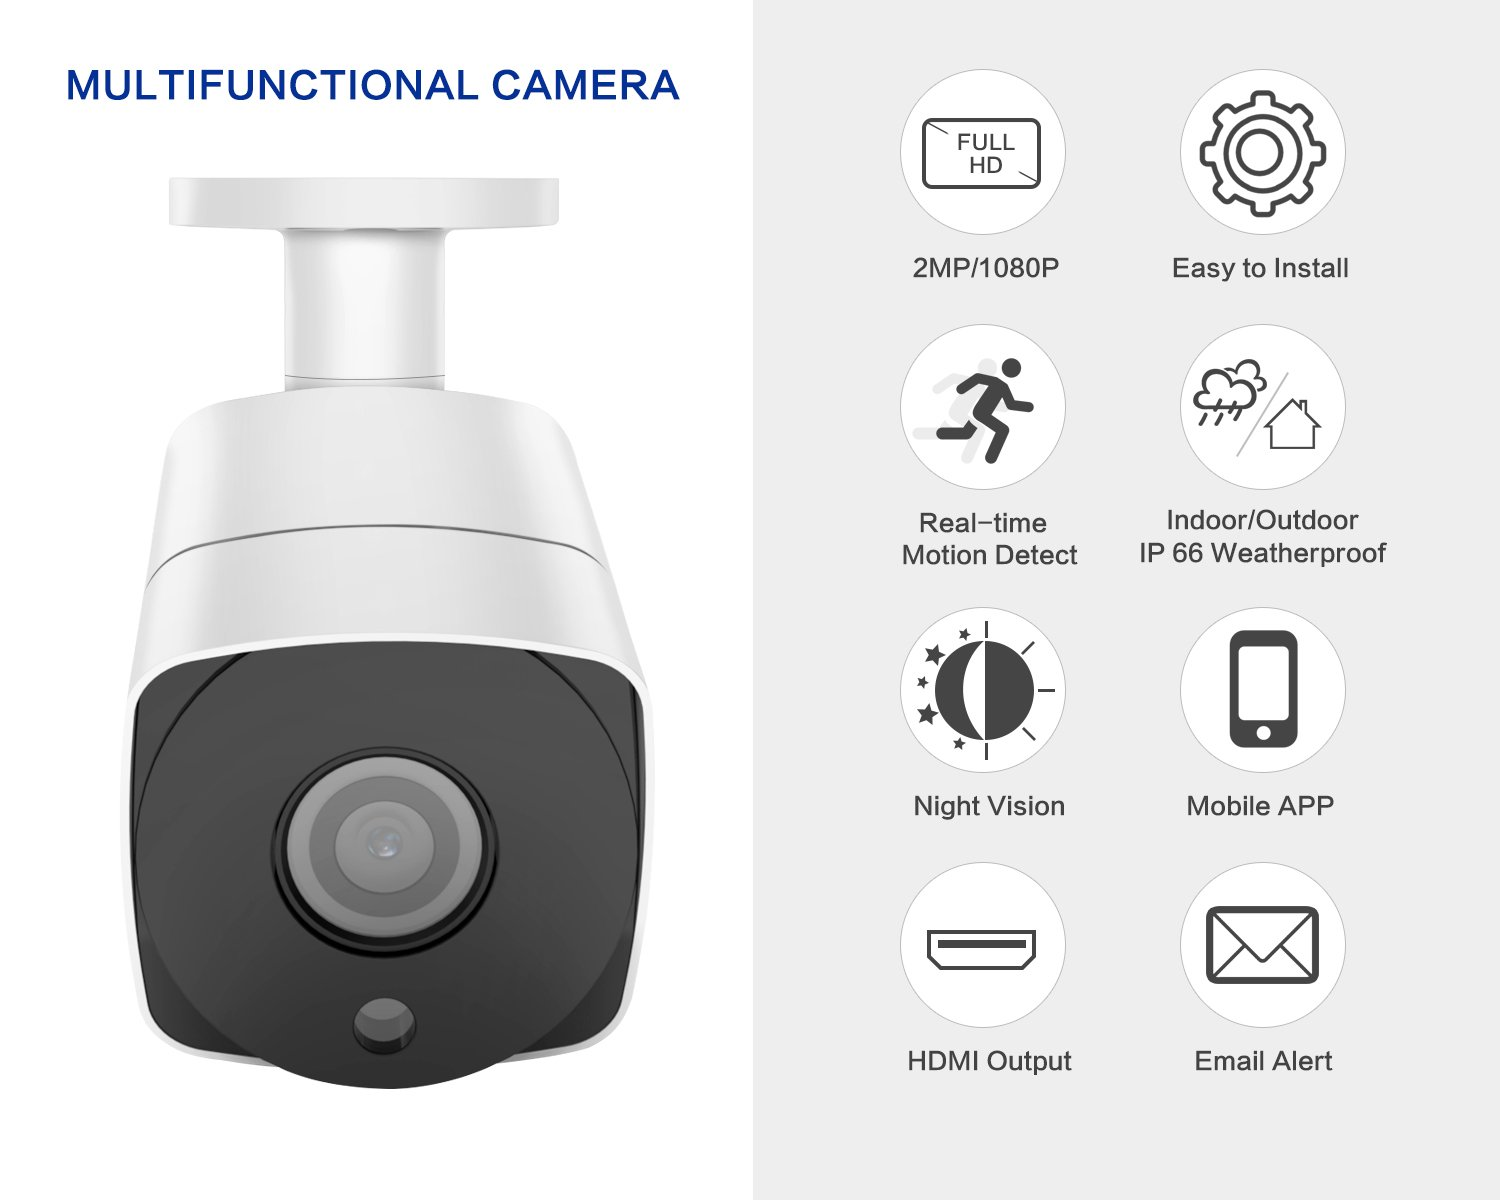 Full Hd Security Camera System 1080psmonet 4 Channel Home 2channel Remote View Mobile Dvr With Shock Sensor And Wifi System1tb Hard Drive4pcs 2mp Outdoor Camerassuper Night Visionp2peasy Viewfree Appno Monthly Fee Electronics